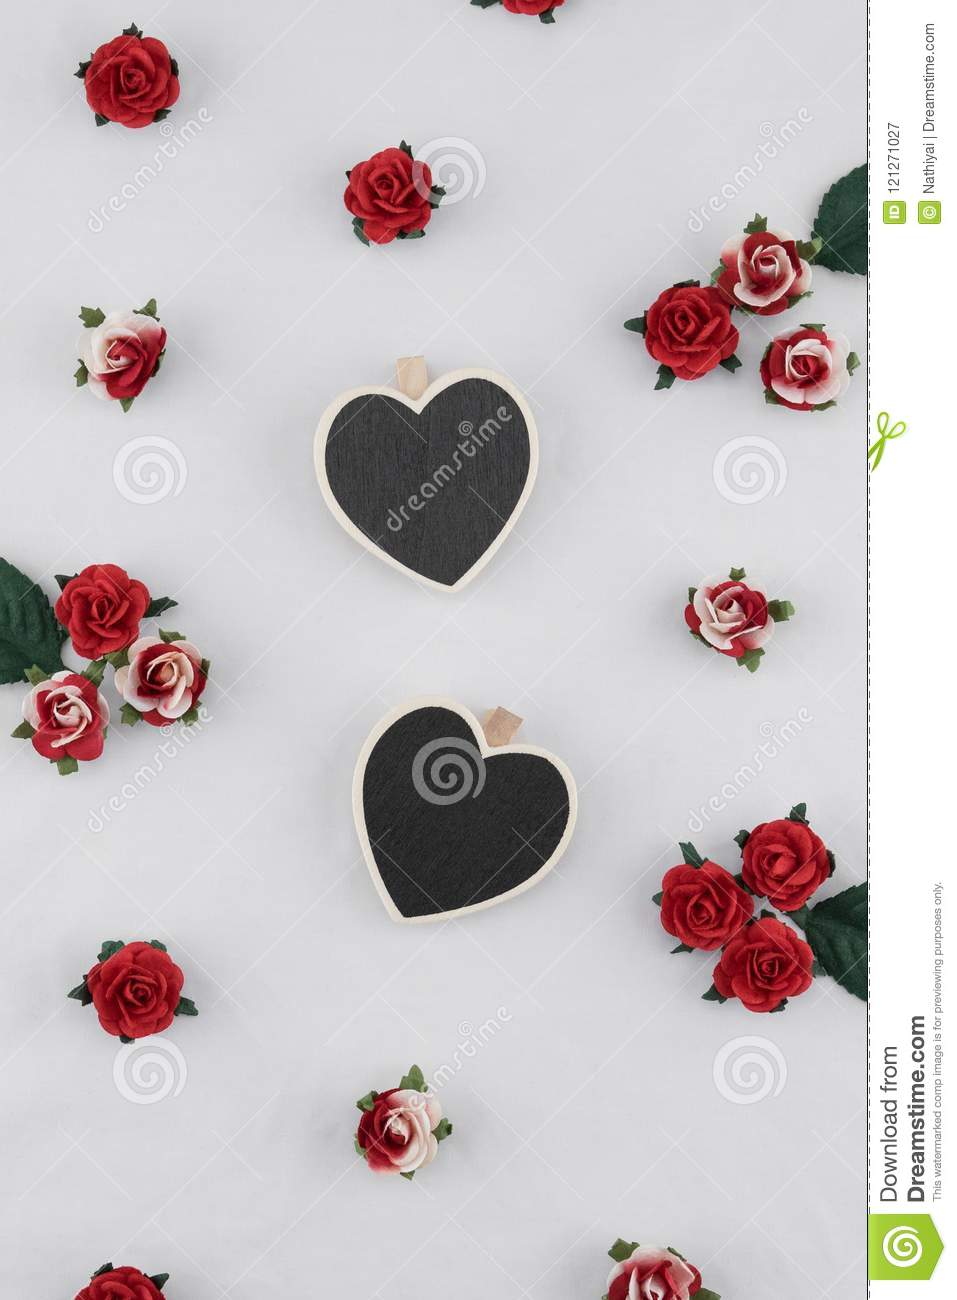 Tiny heart shape blackboard decorate with red rose paper flowers tiny heart shape blackboard decorate with red rose paper flowers mightylinksfo